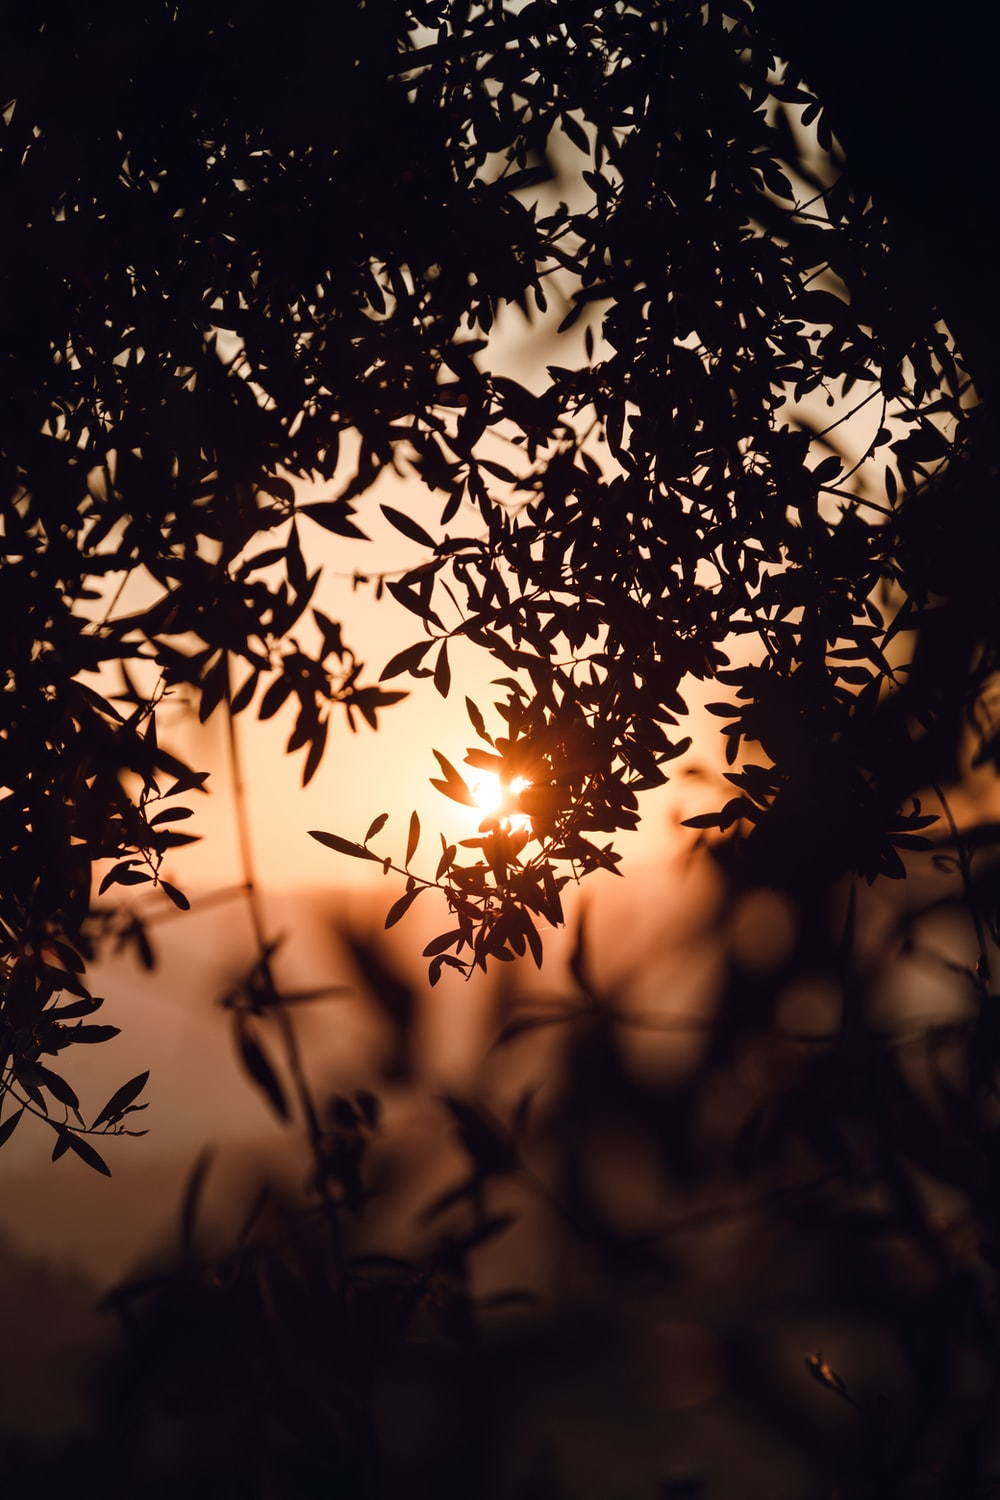 silhouette of leaf sunset